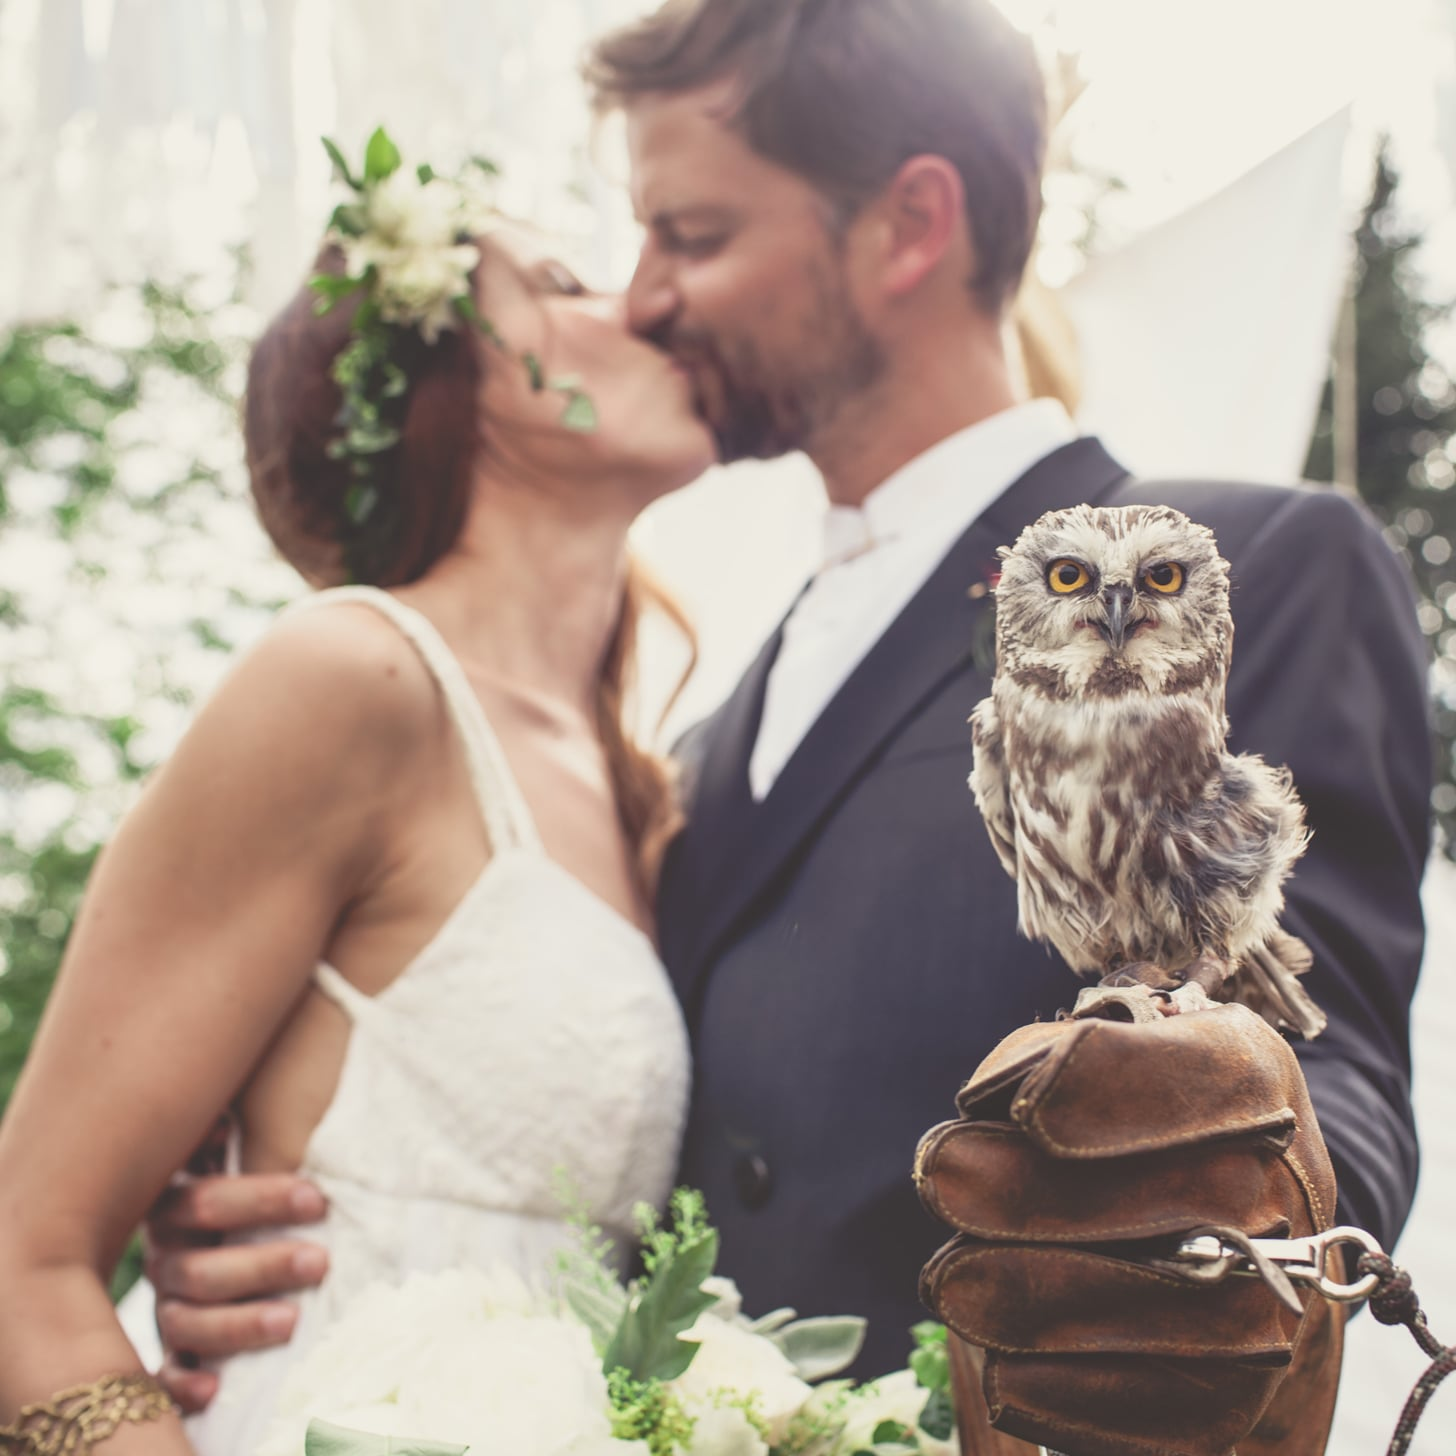 Forest Wedding With Tepee and Owl | POPSUGAR Love & Sex